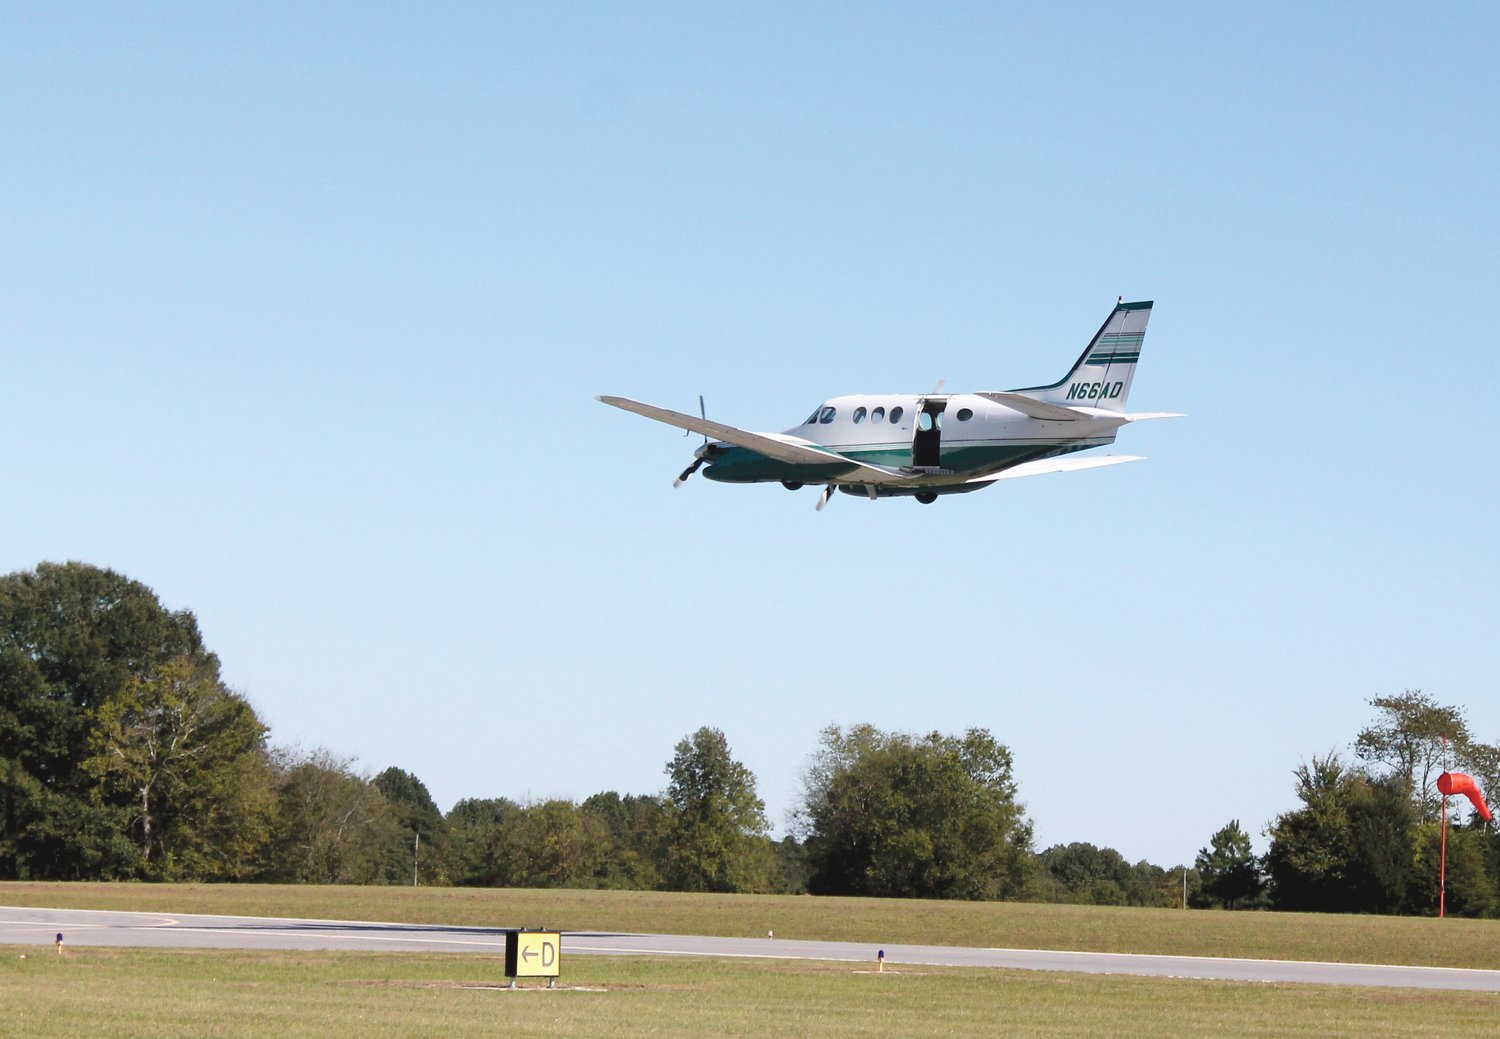 A plane takes off from the Harnett County Jetport during a WIngs Over Harnett aviation show in 2015.